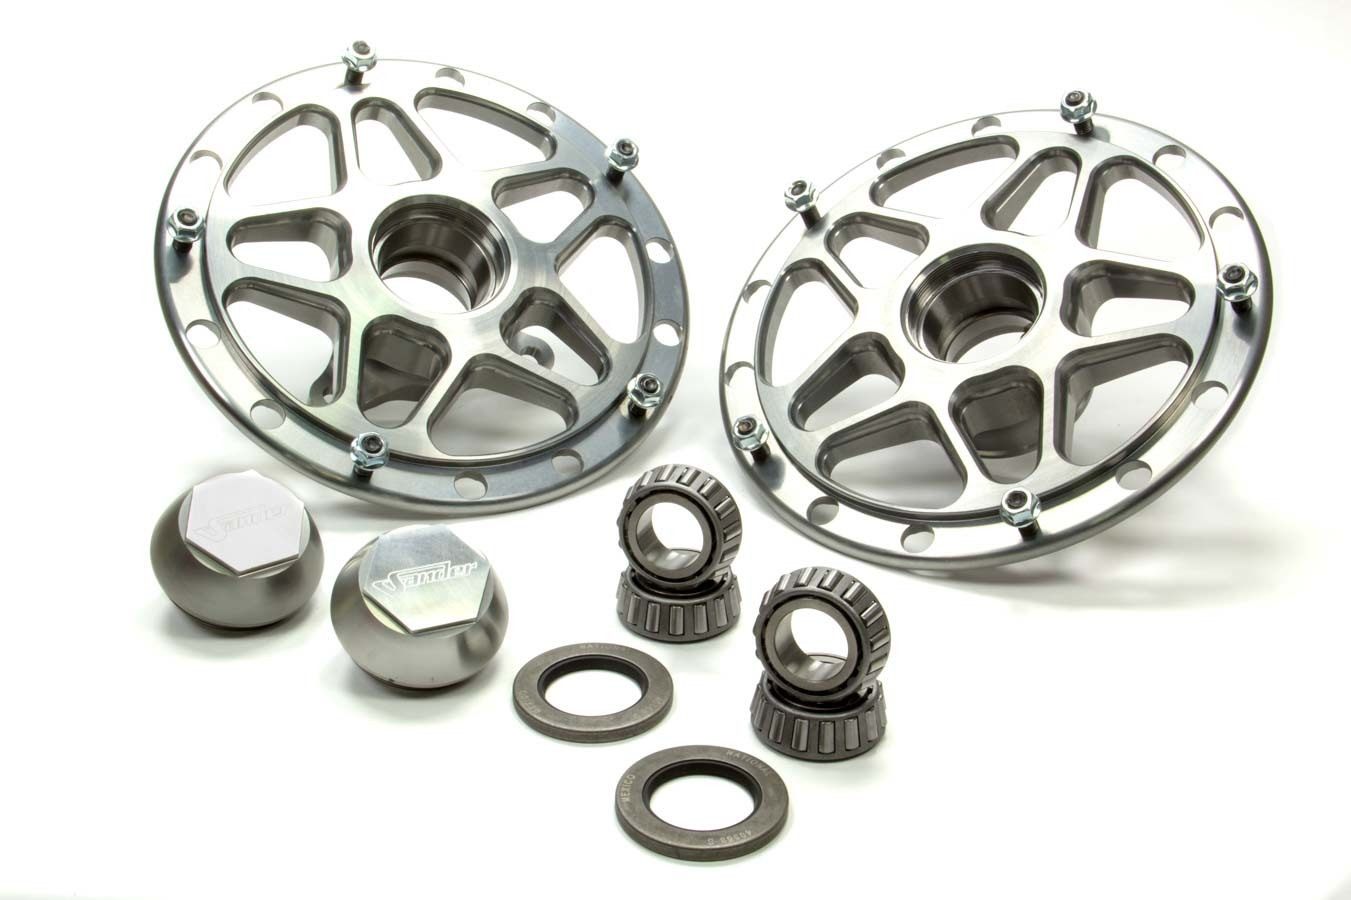 Sander Engineering 1015-15F-9 Wheel Hub, Front, Direct Mount, Bearings, Aluminum, Polished, Sprint Car, Pair